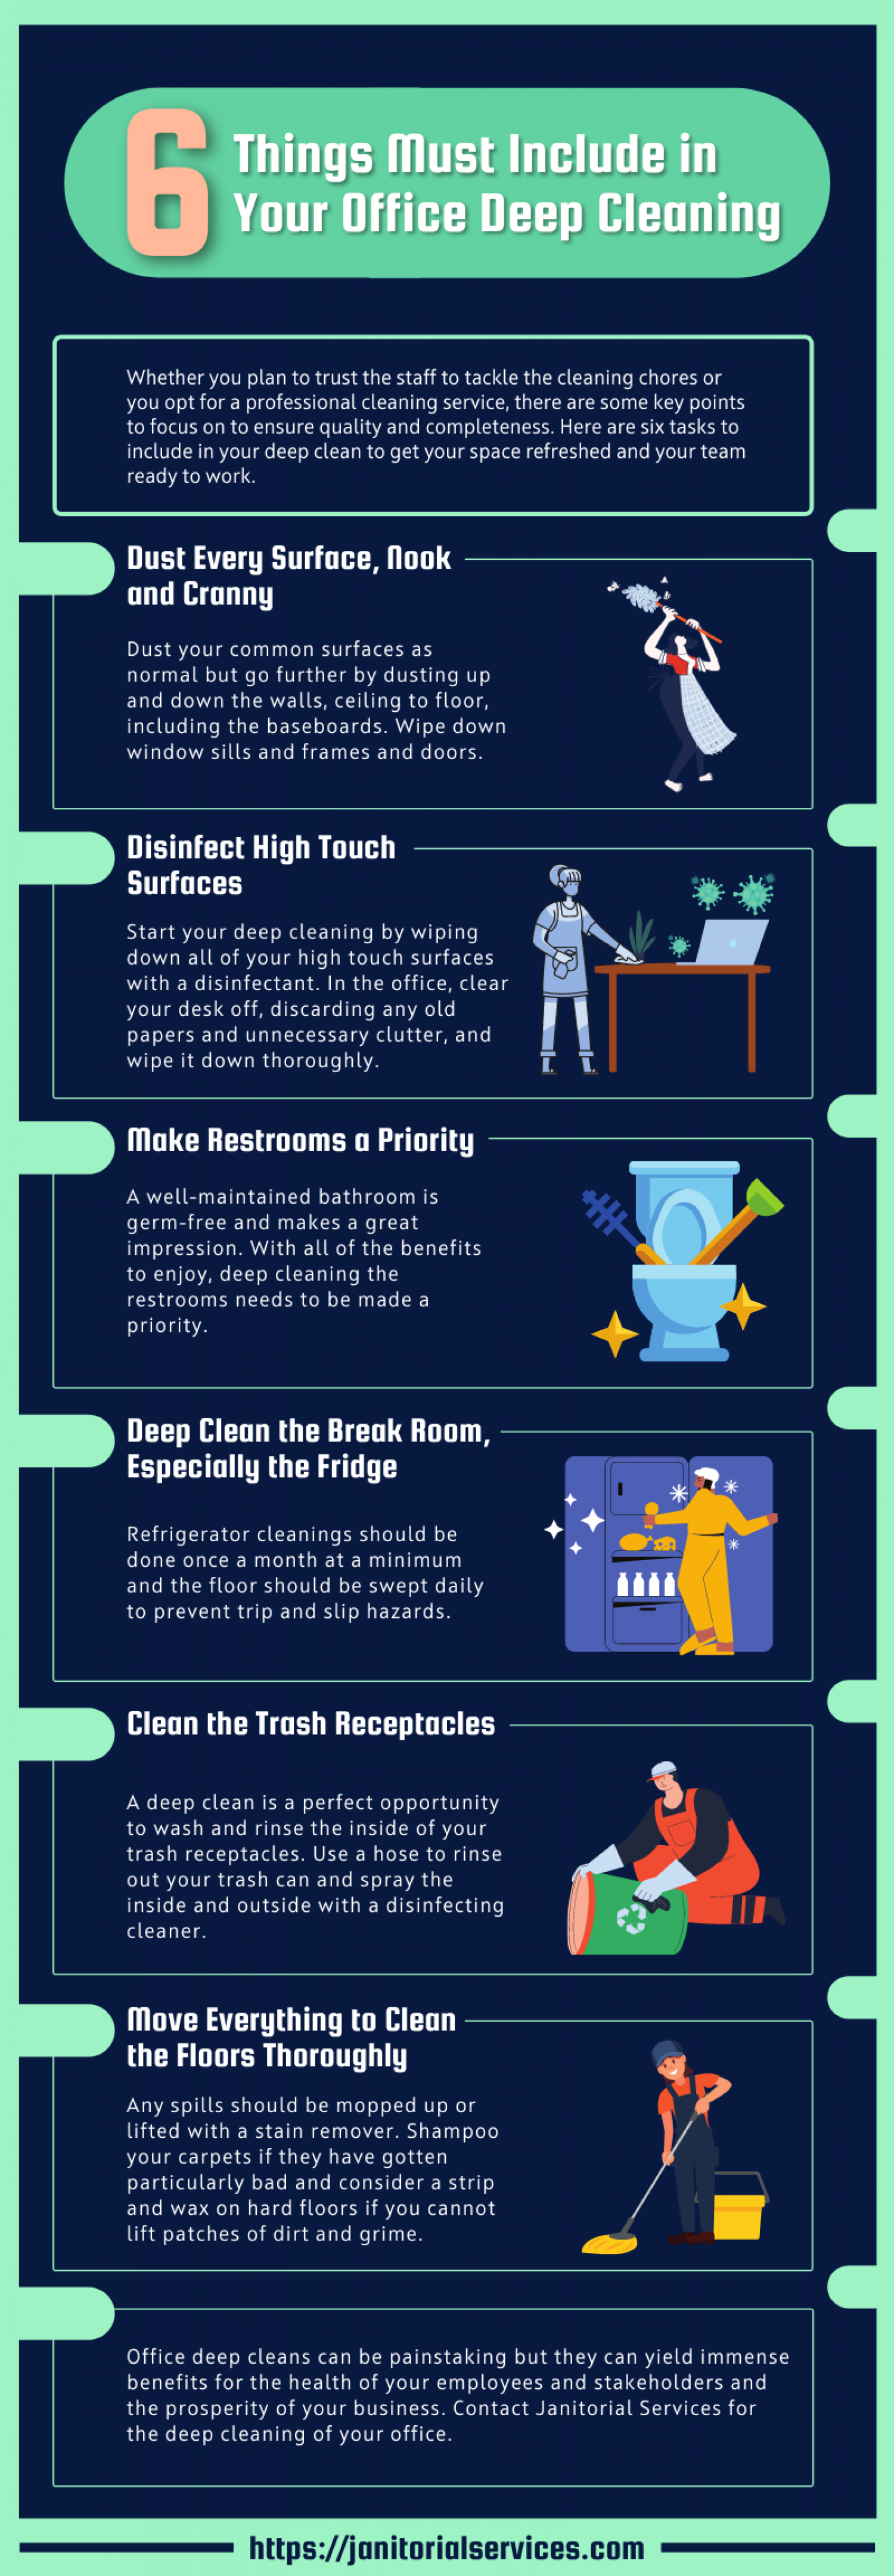 6 Things Must Include in Your Office Deep Cleaning Infographic